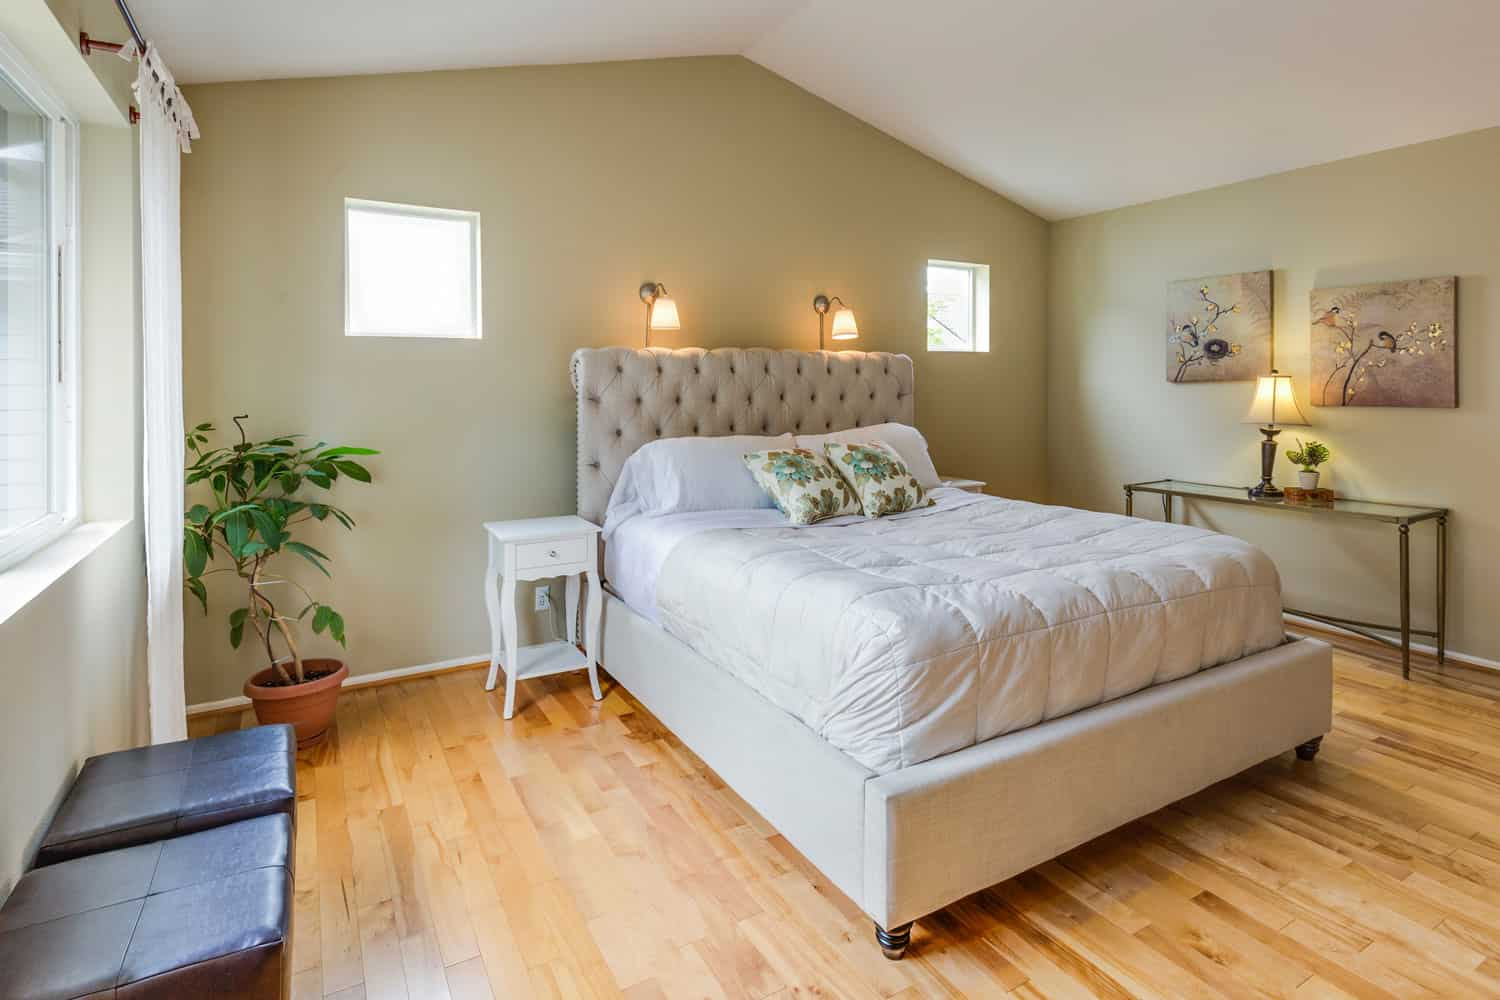 photo of a comfortable bed in a bedroom